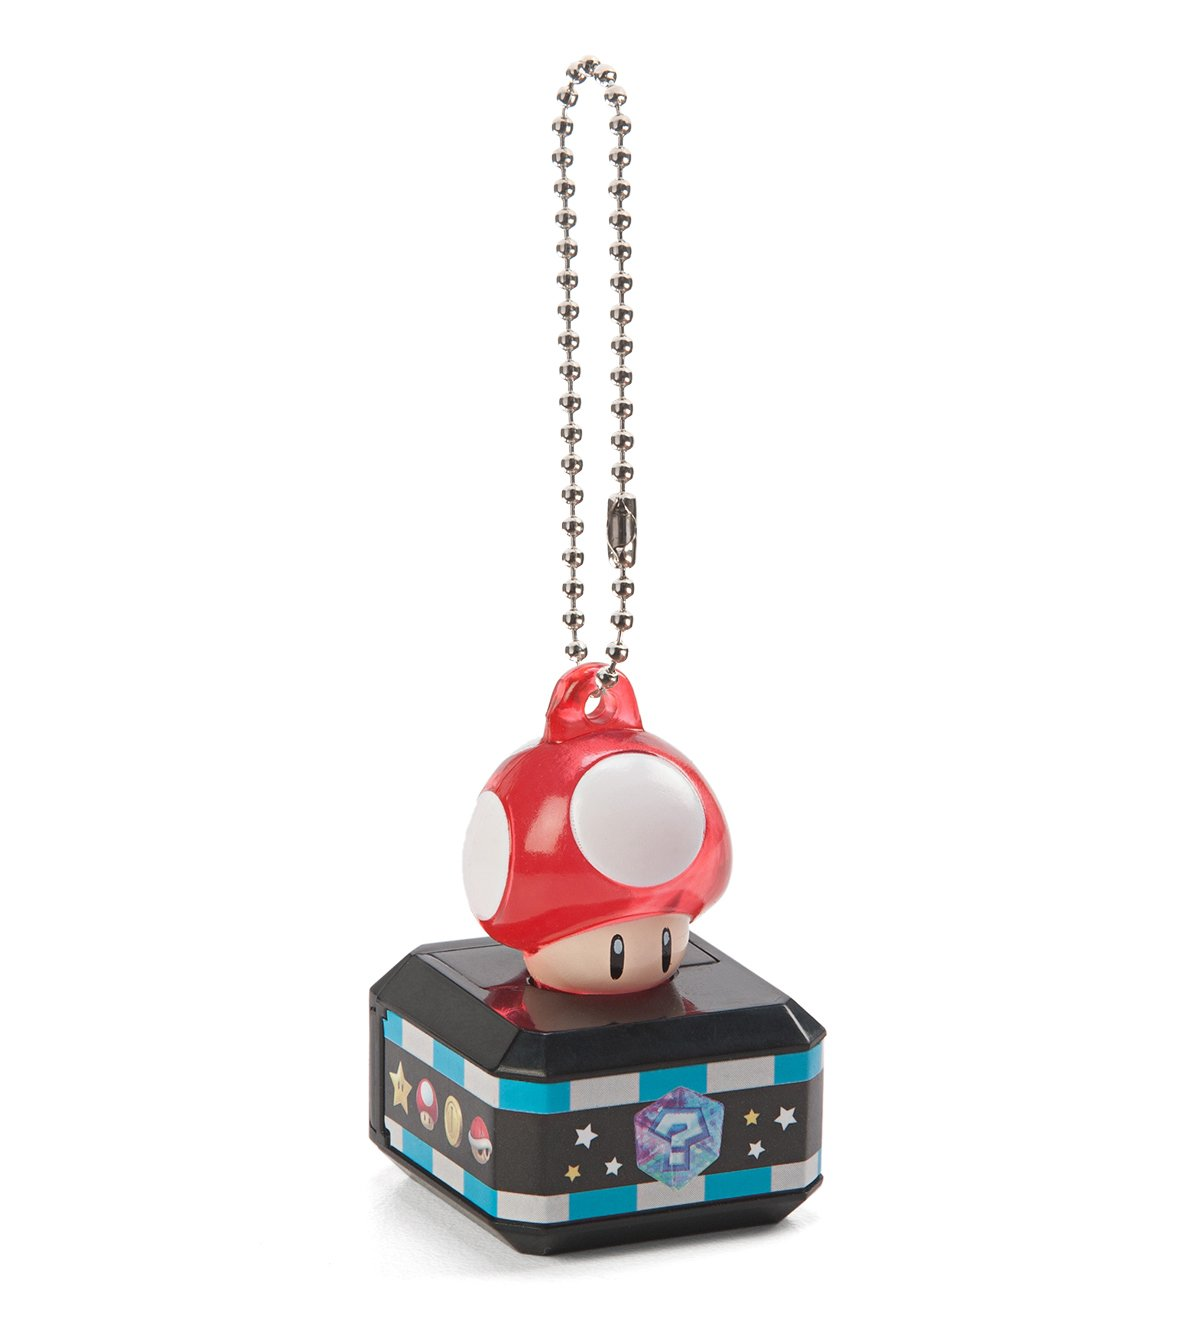 Super Mario Bros. Mario Kart 8 Red Mushroom Light Up LED ...